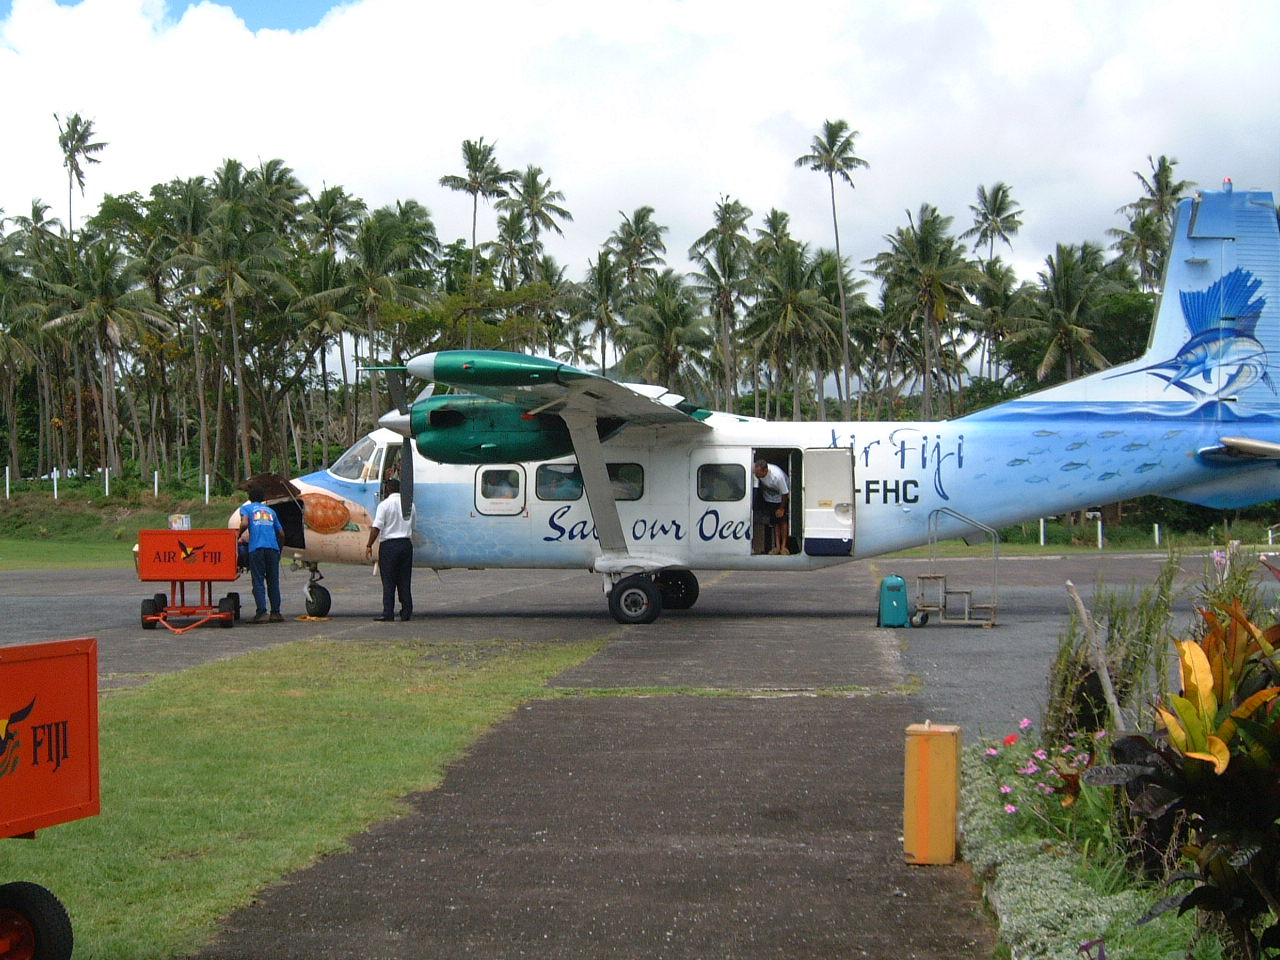 Air travel provides a vital link between the islands of Fiji, spread over 1.3 million square kilometres of the Pacific Ocean. Photo by Herman Luyken /Wikimedia http://creativecommons.org/licenses/by-sa/3.0/